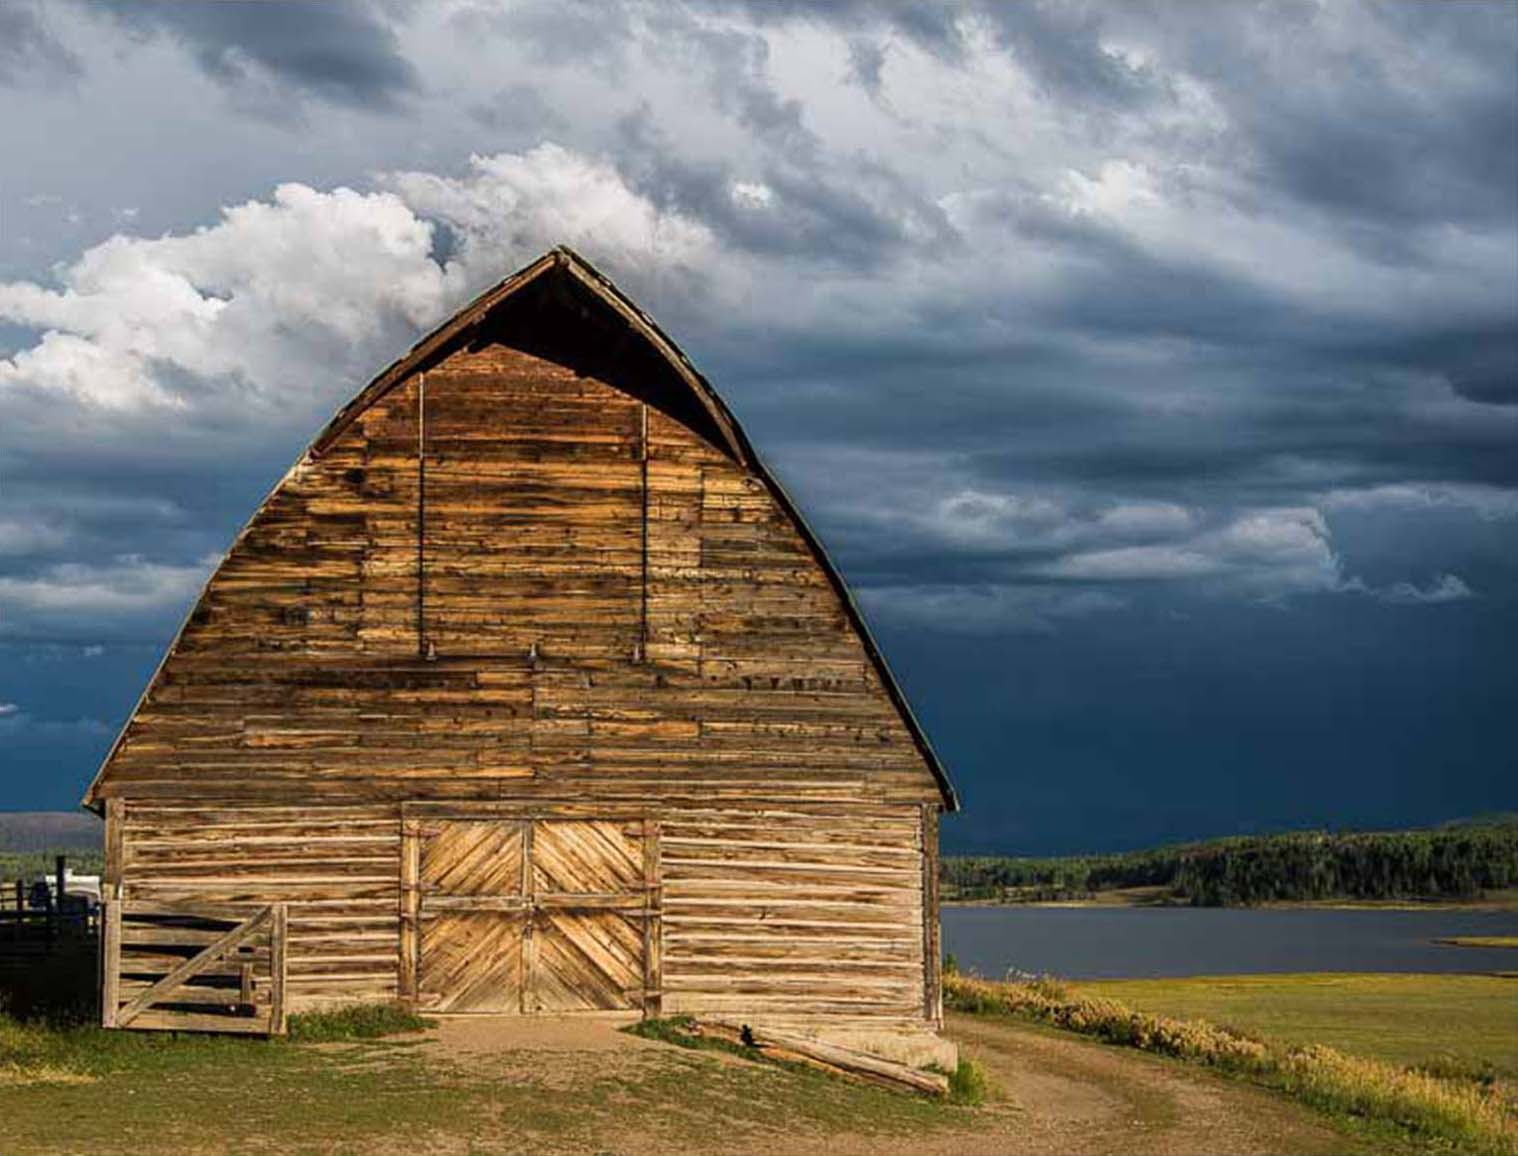 Old barn in a Stormy landscape by Mark Ruckman